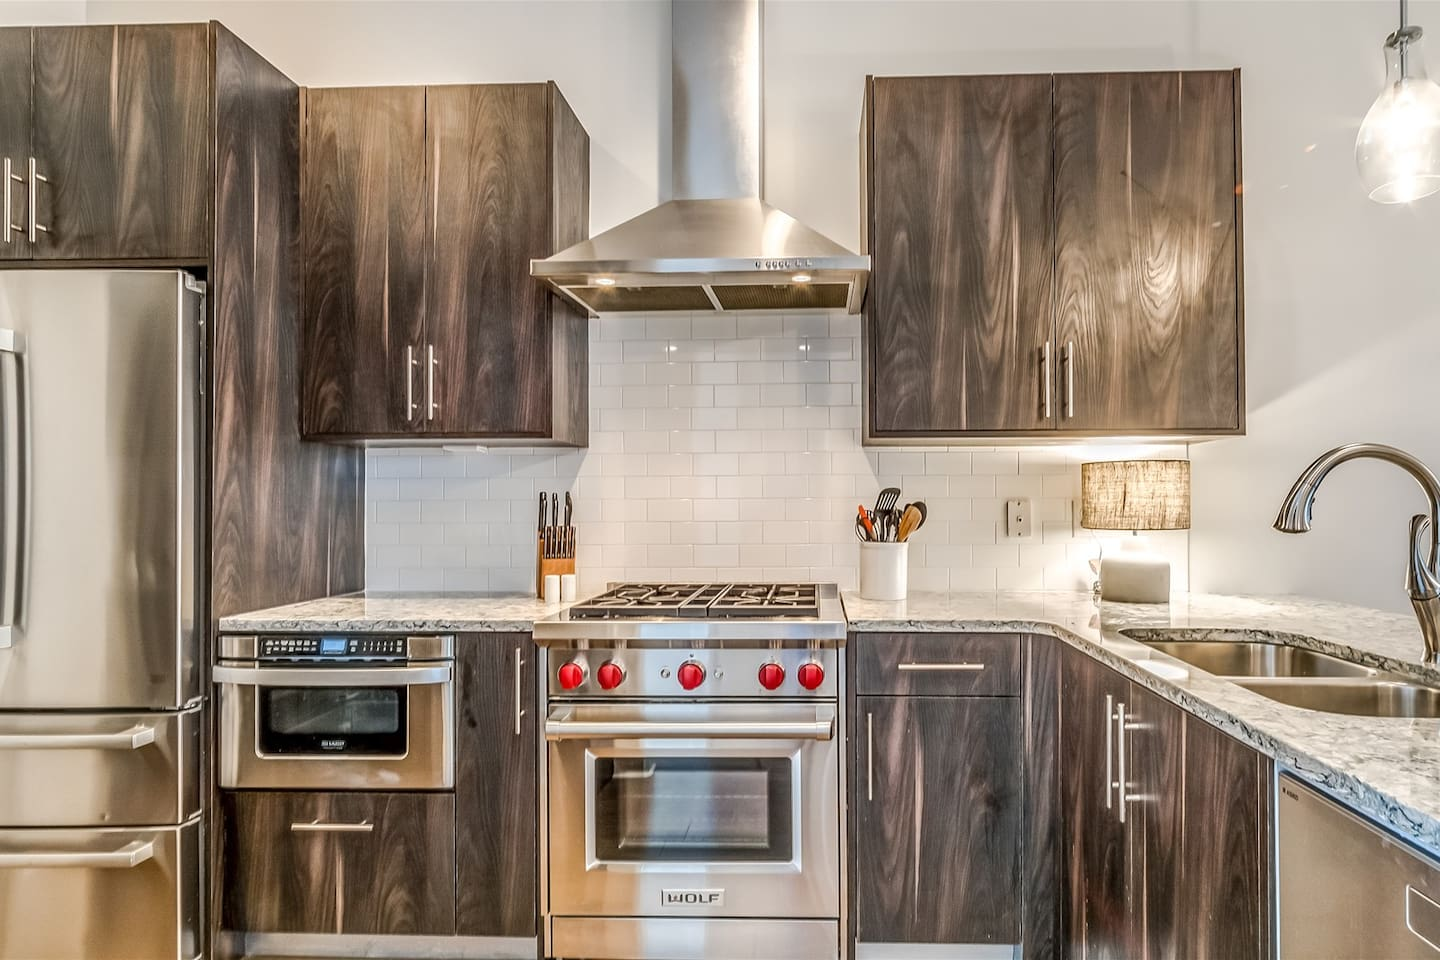 Kitchen - Supplied with Top-Notch Stainless Steel Appliances